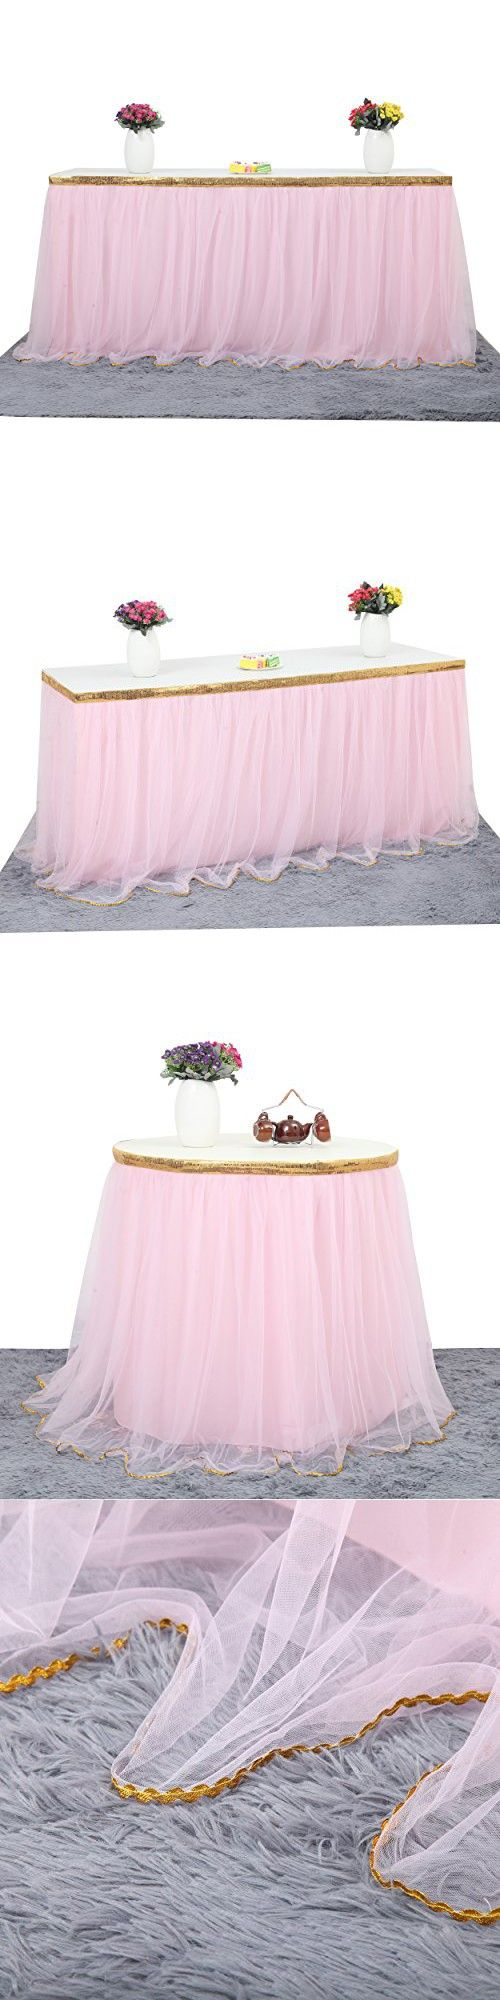 Unicorn party decoration 6 ft Pink Table Skirt Gold Trim Mesh Tutu Tulle Table Skirt for Rectangle or Round Tables Baby Shower Wedding Birthday Party Decorations